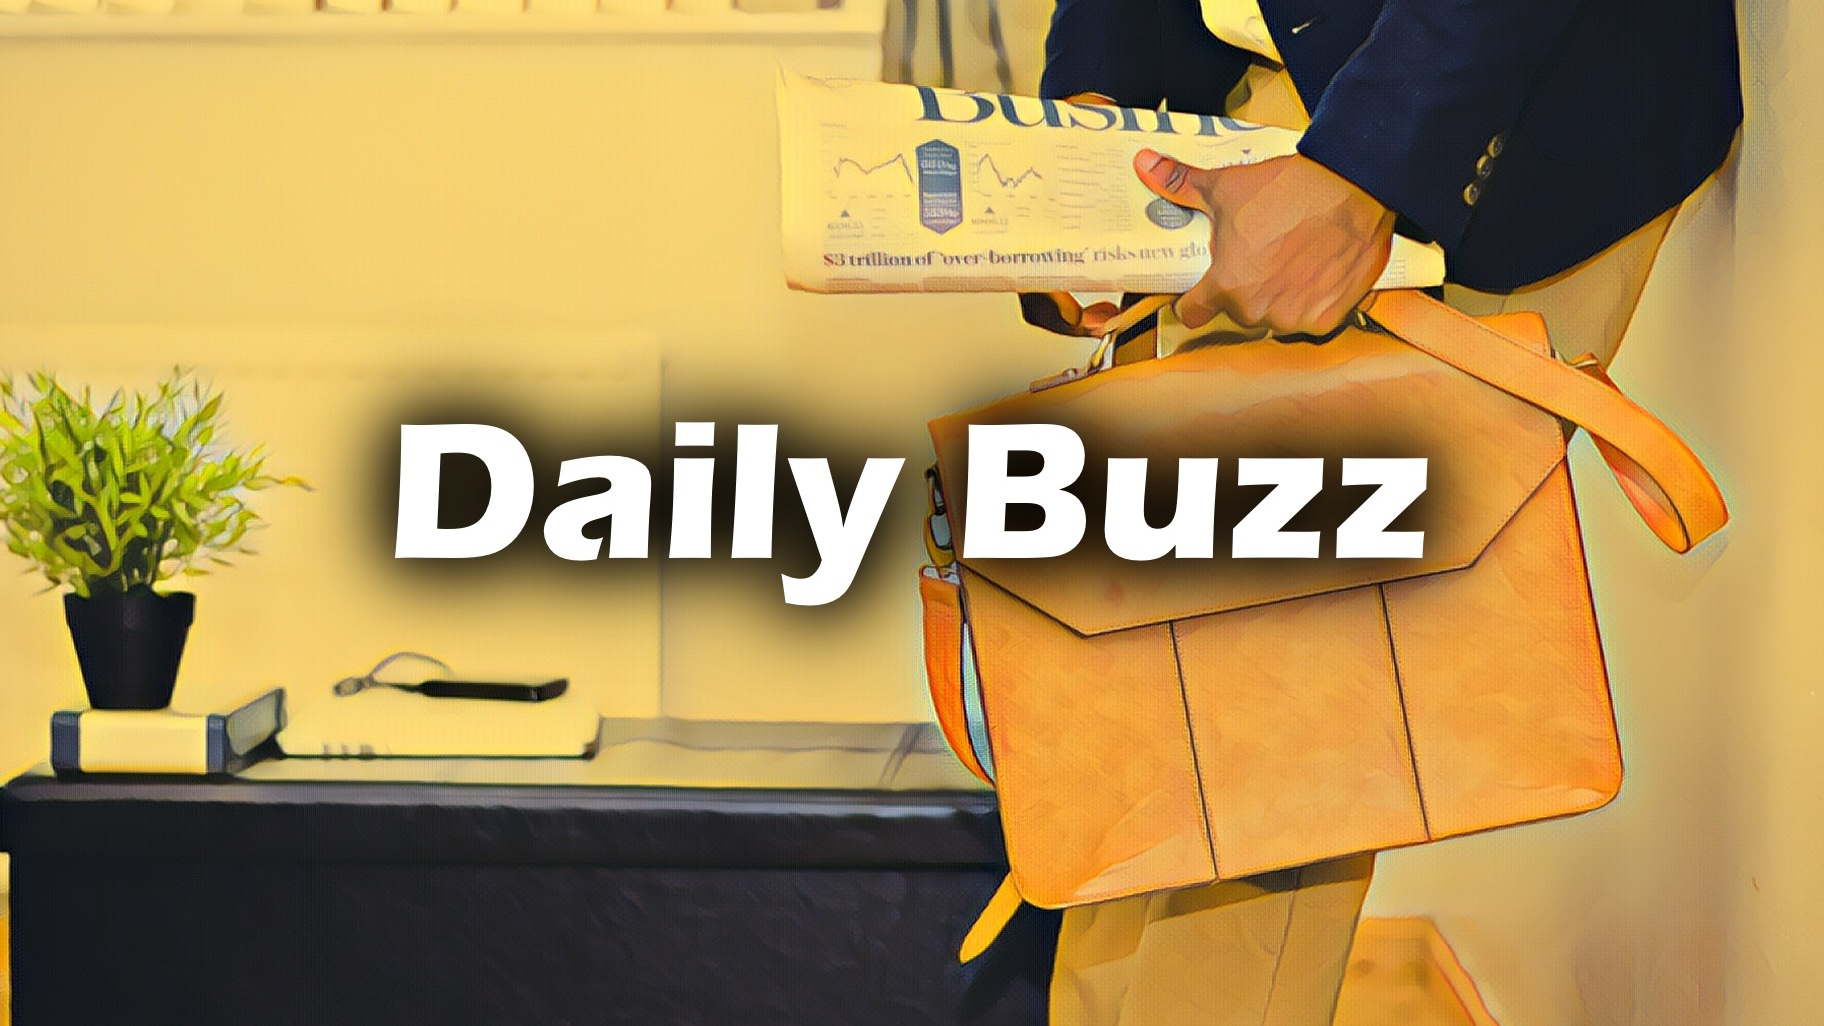 DailyBuzz Tuesday 18 September 2018